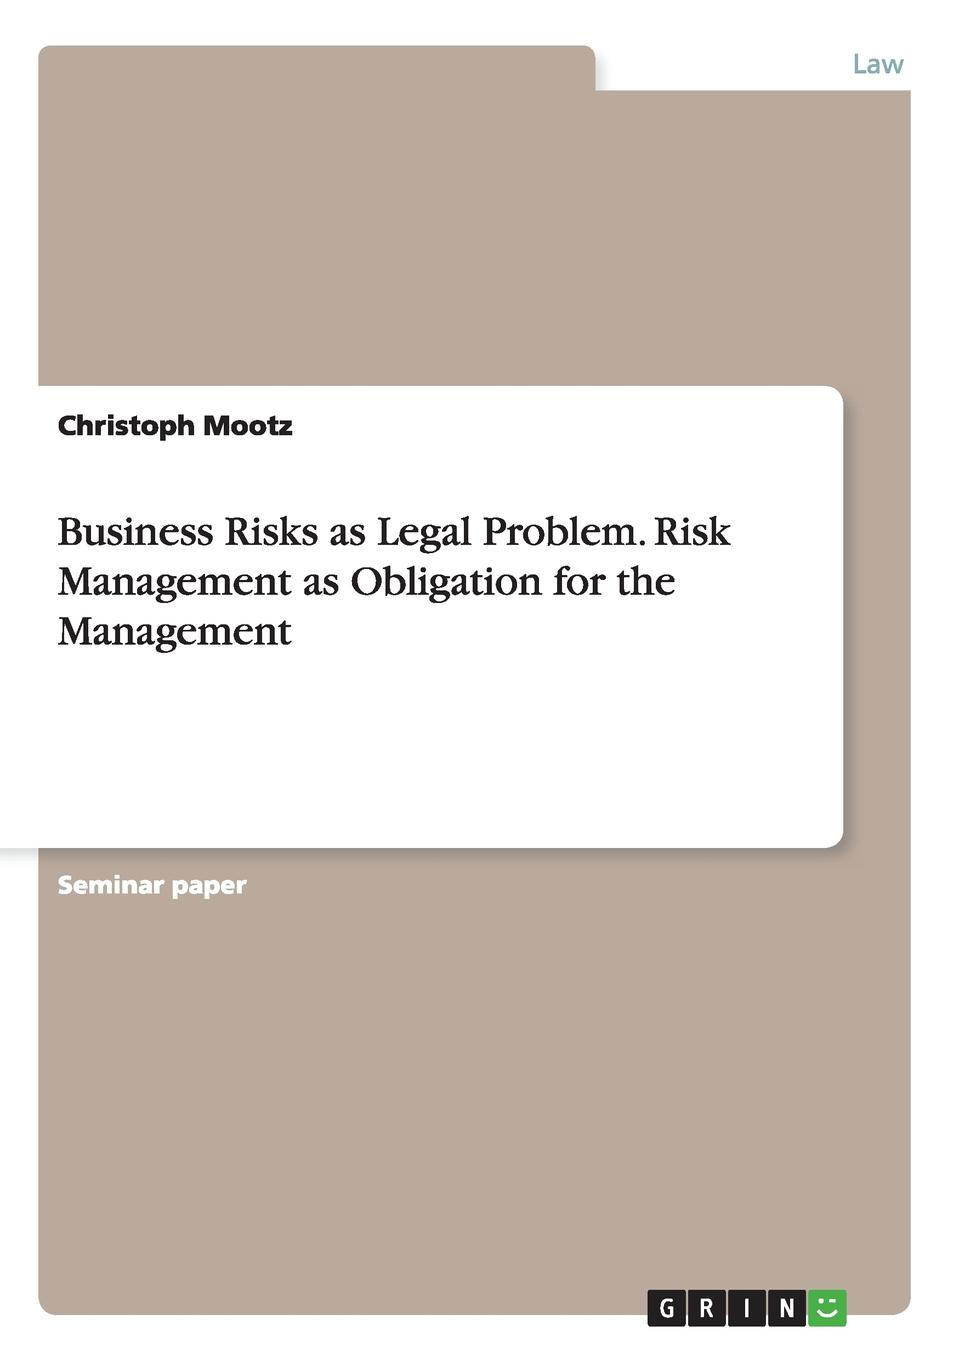 Christoph Mootz Business Risks as Legal Problem. Risk Management as Obligation for the Management cherniavsky a g law as the basis of interaction of state and society round table discussion number 4